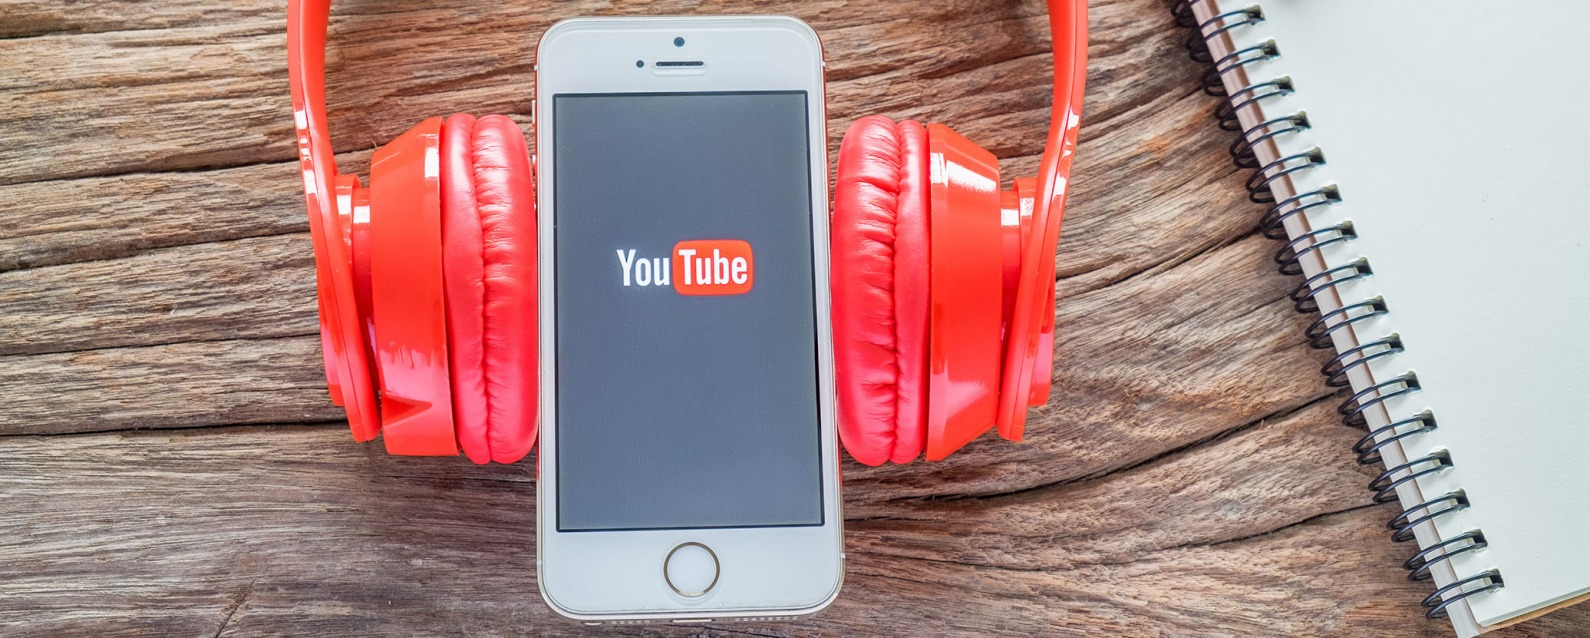 How to Download Music from YouTube on Your iPhone with